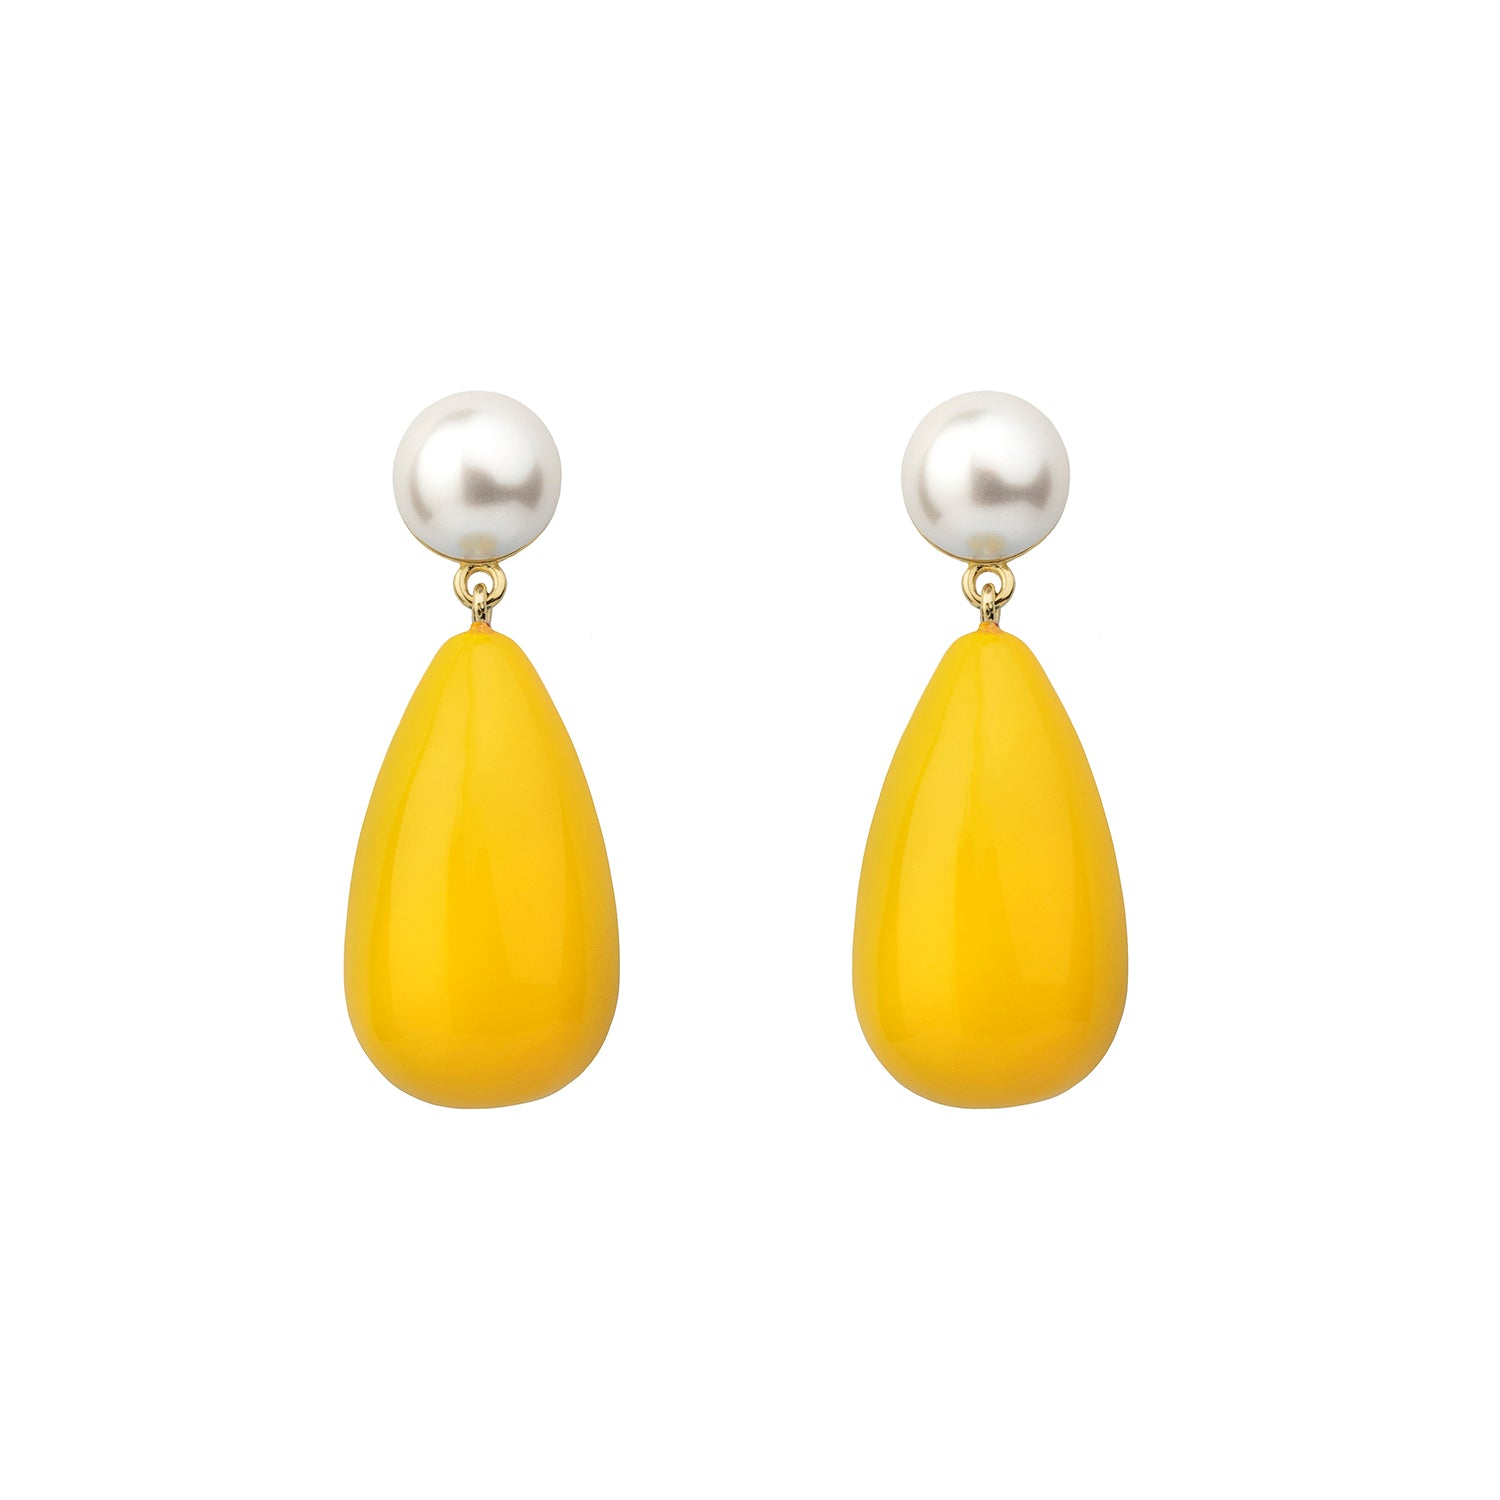 ESHVI - MIDNIGHT KISS PEARL YELLOW DROP EARRINGS